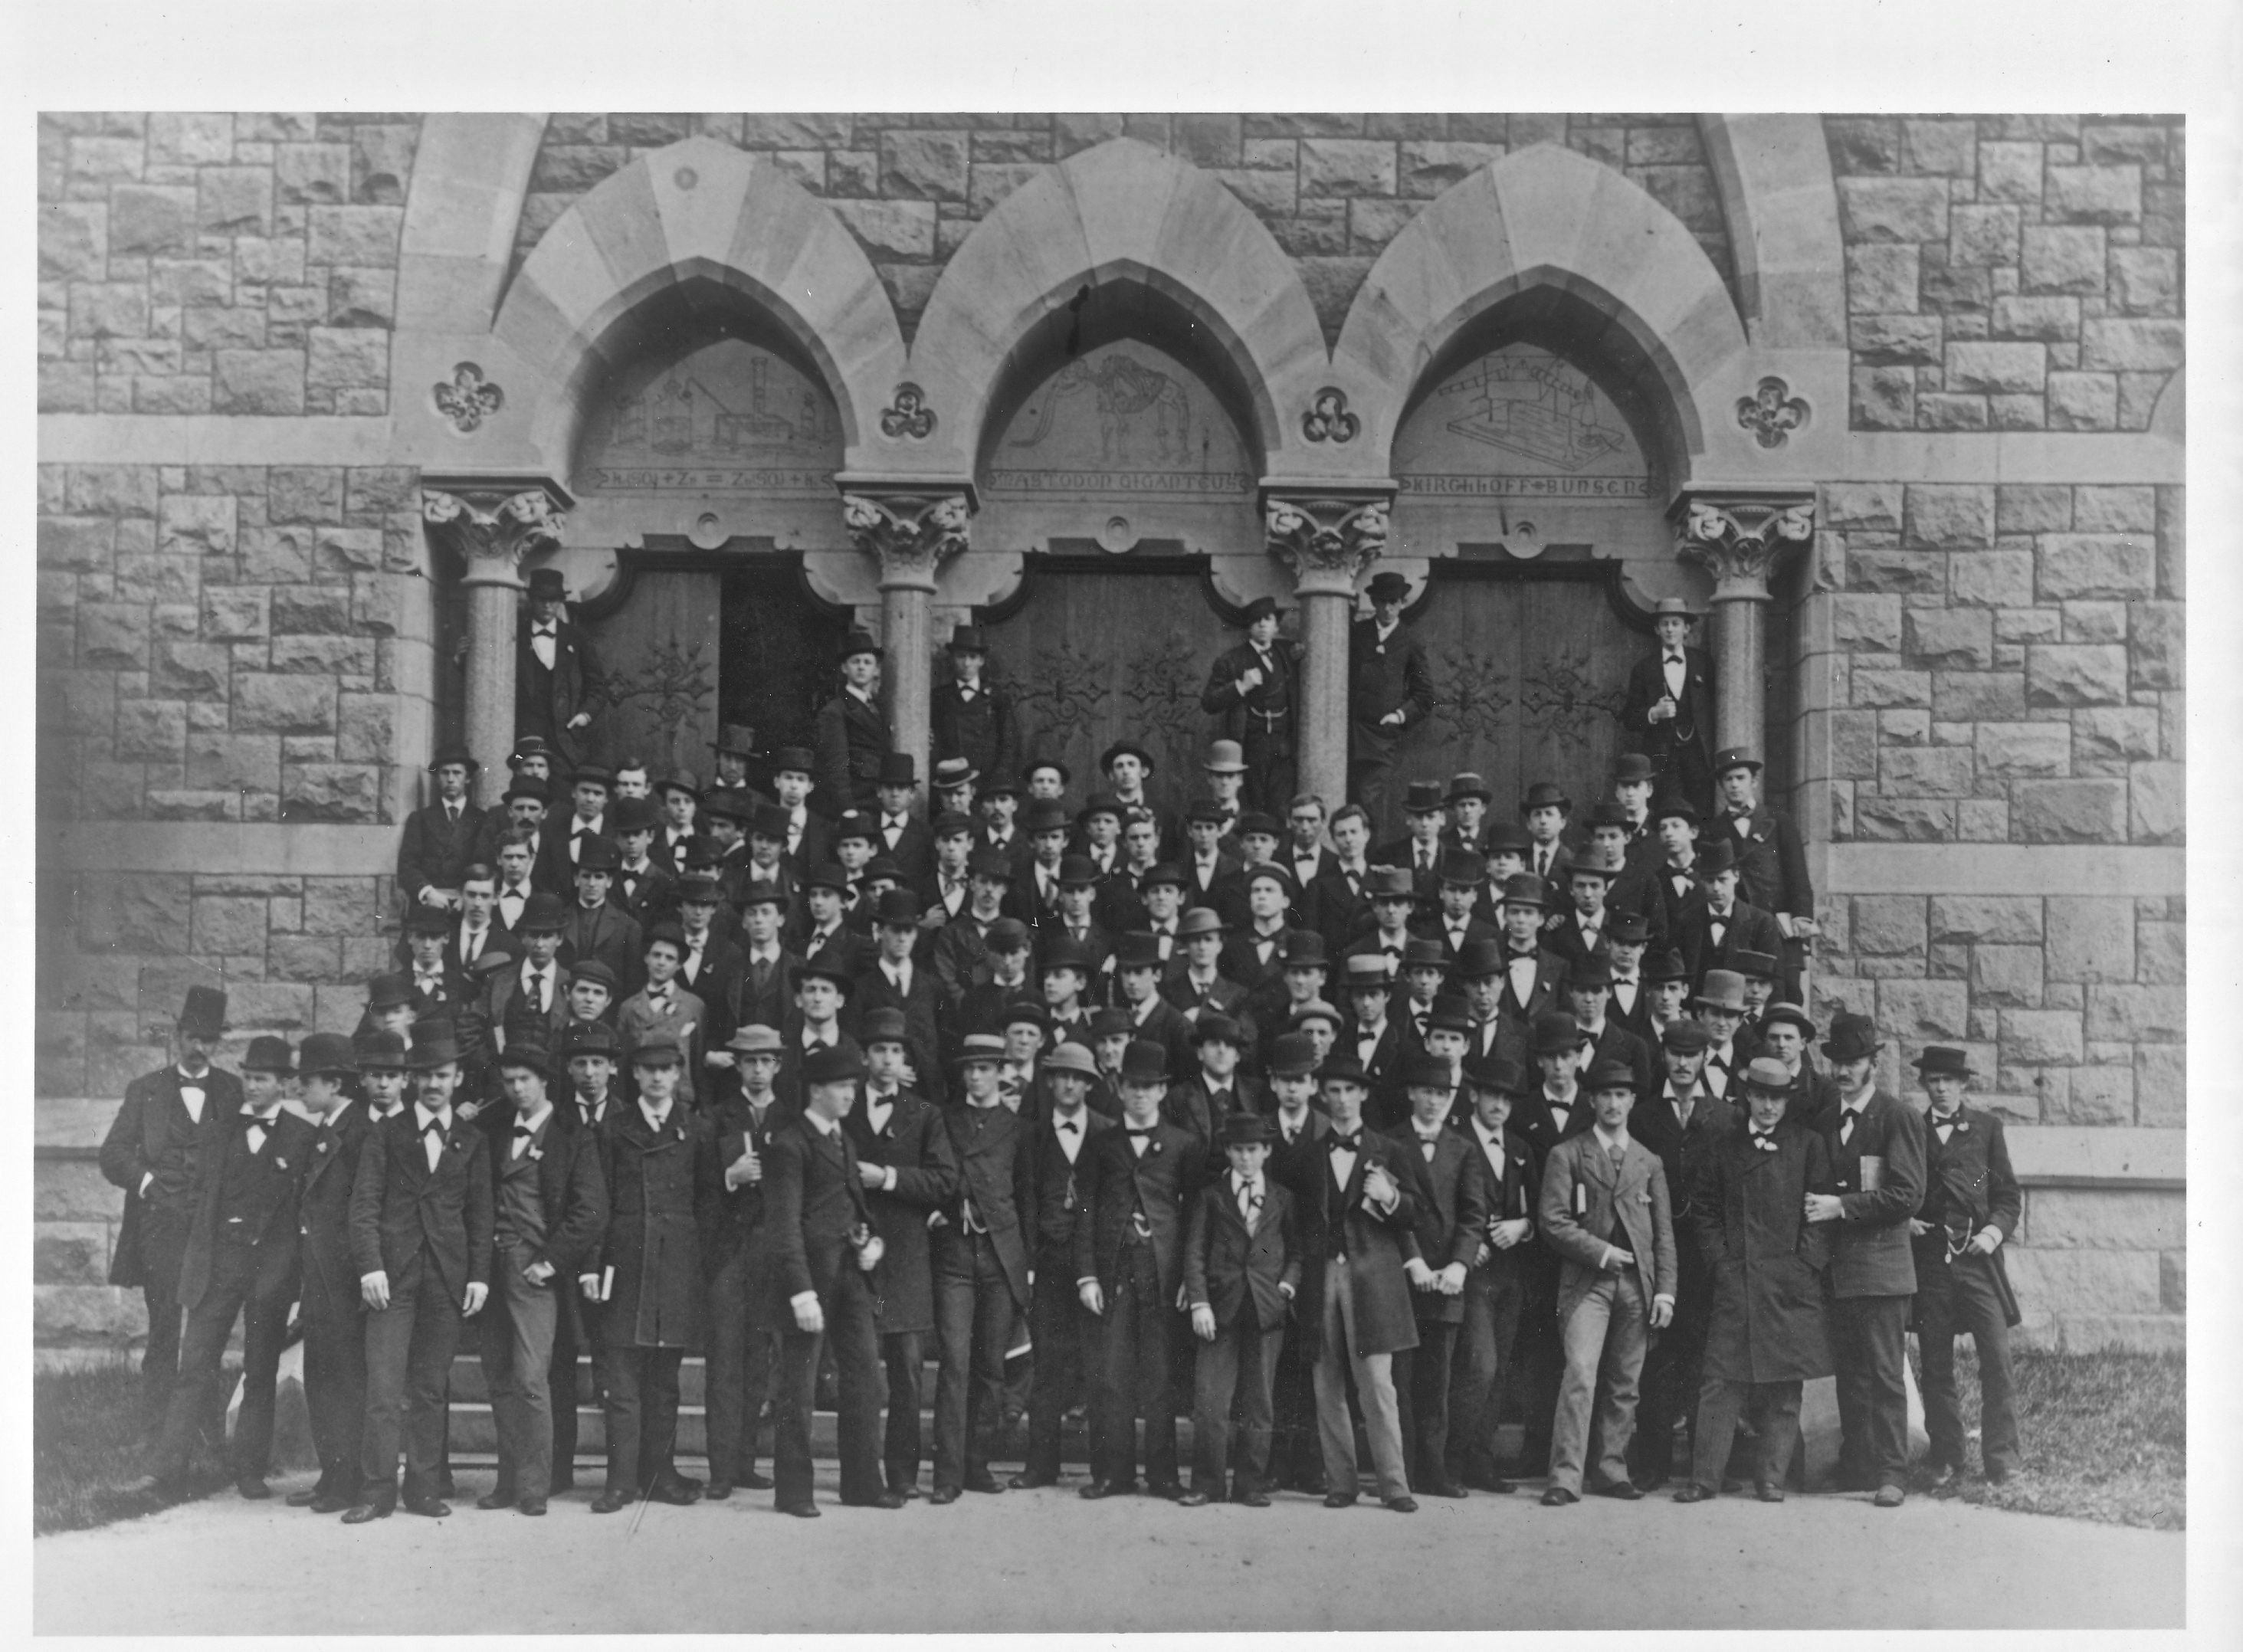 File:Princeton University Class of 1879.jpg